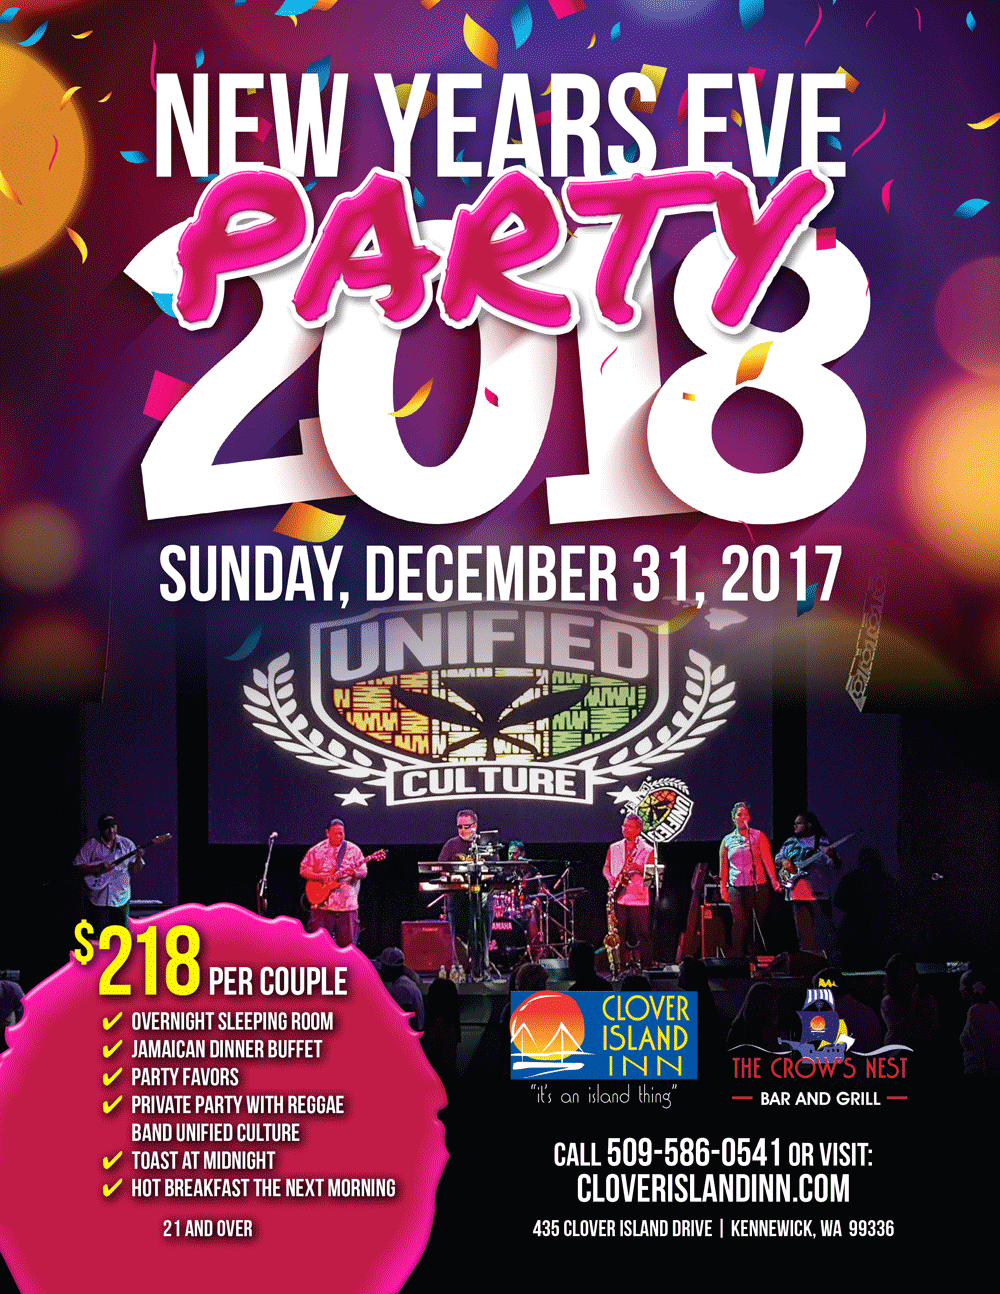 Clover Island Inn New Years Eve Party 2018